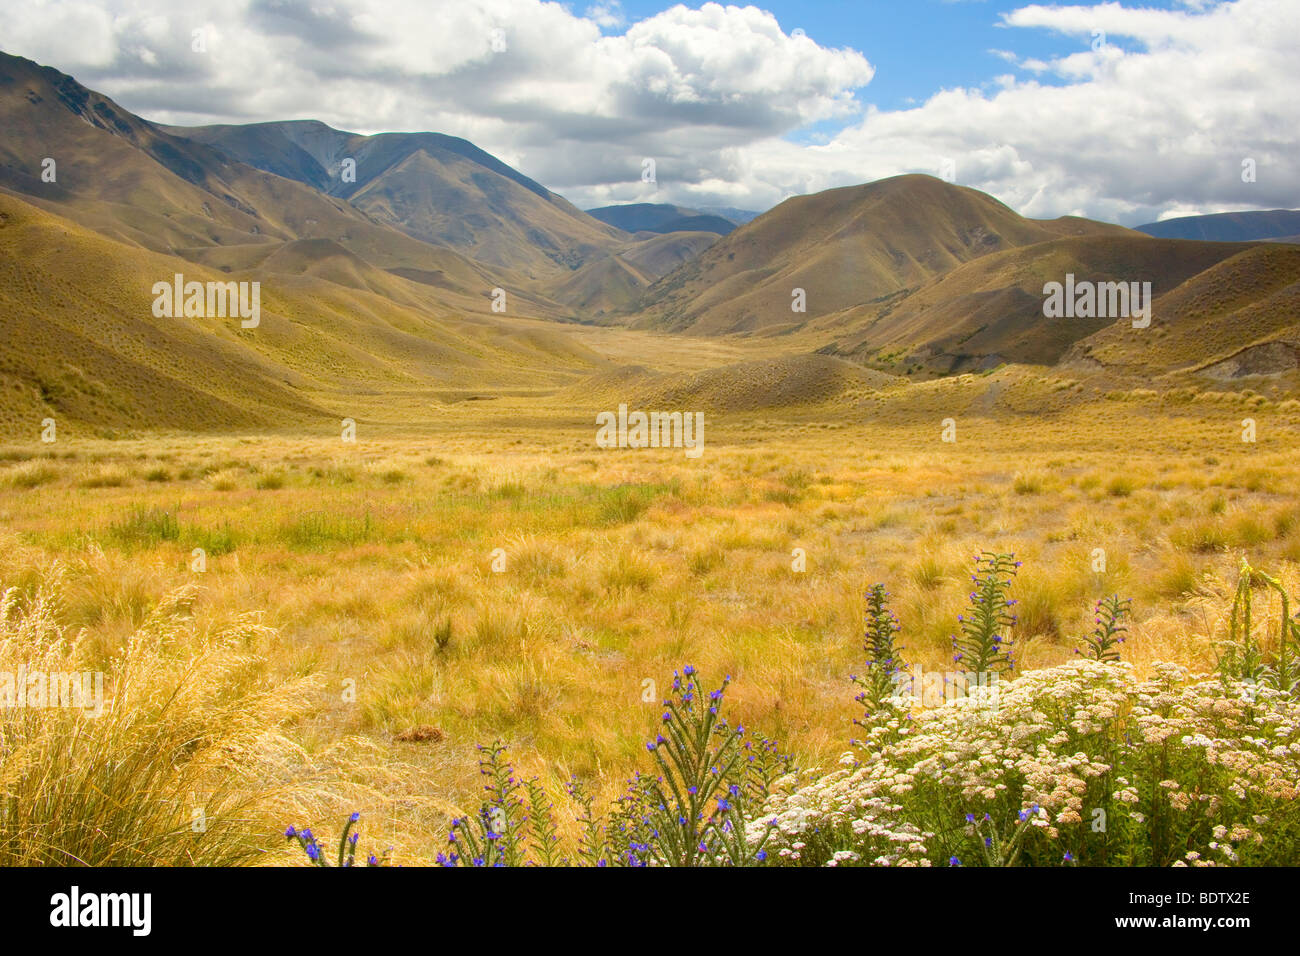 Lindis Pass, rolling grassy hills around Lindis Pass, Lindis Valley, Otago, South Island, New Zealand - Stock Image